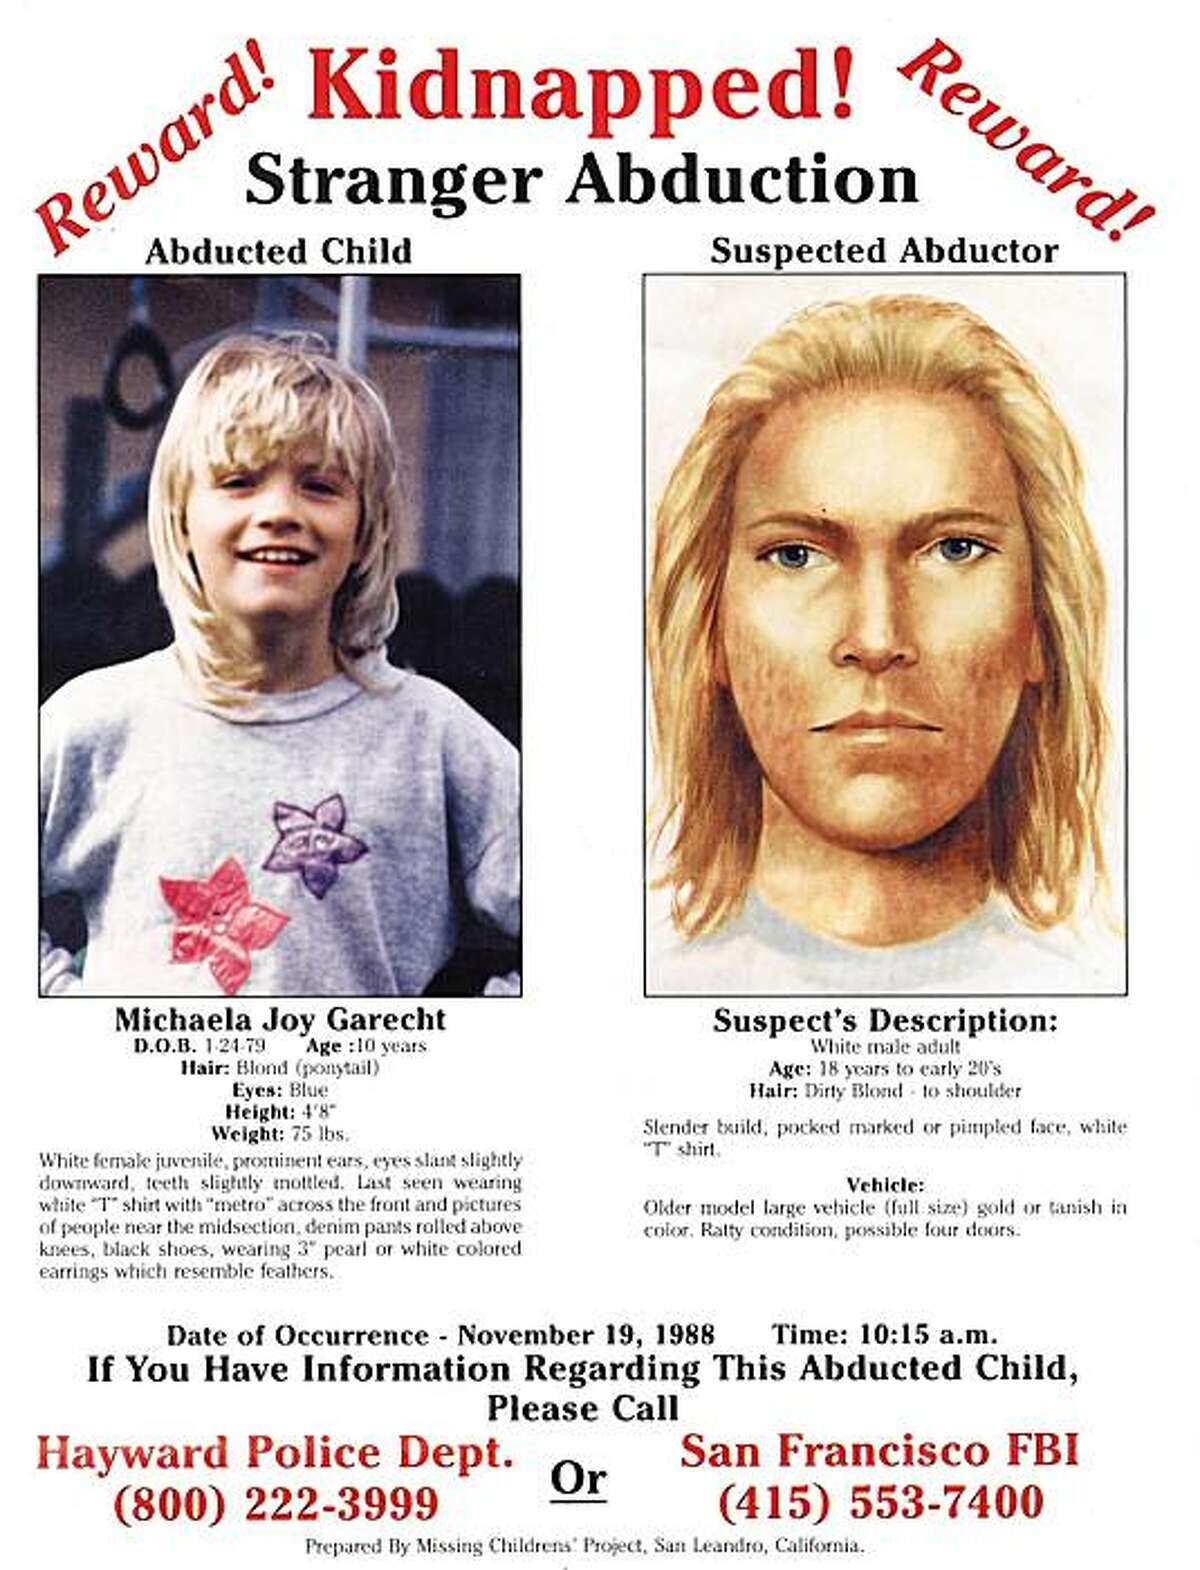 MICHAELA GARECHT MISSING CHILD AND POSSIBLE SUSPECT SKETCH. MICHAELA WAS MISSING, POSSIBLY KIDNAPPED FROM HER HAYWARD HOME AND HAS NEVER BEEN FOUND. ALSO RAN: 12/29/1999